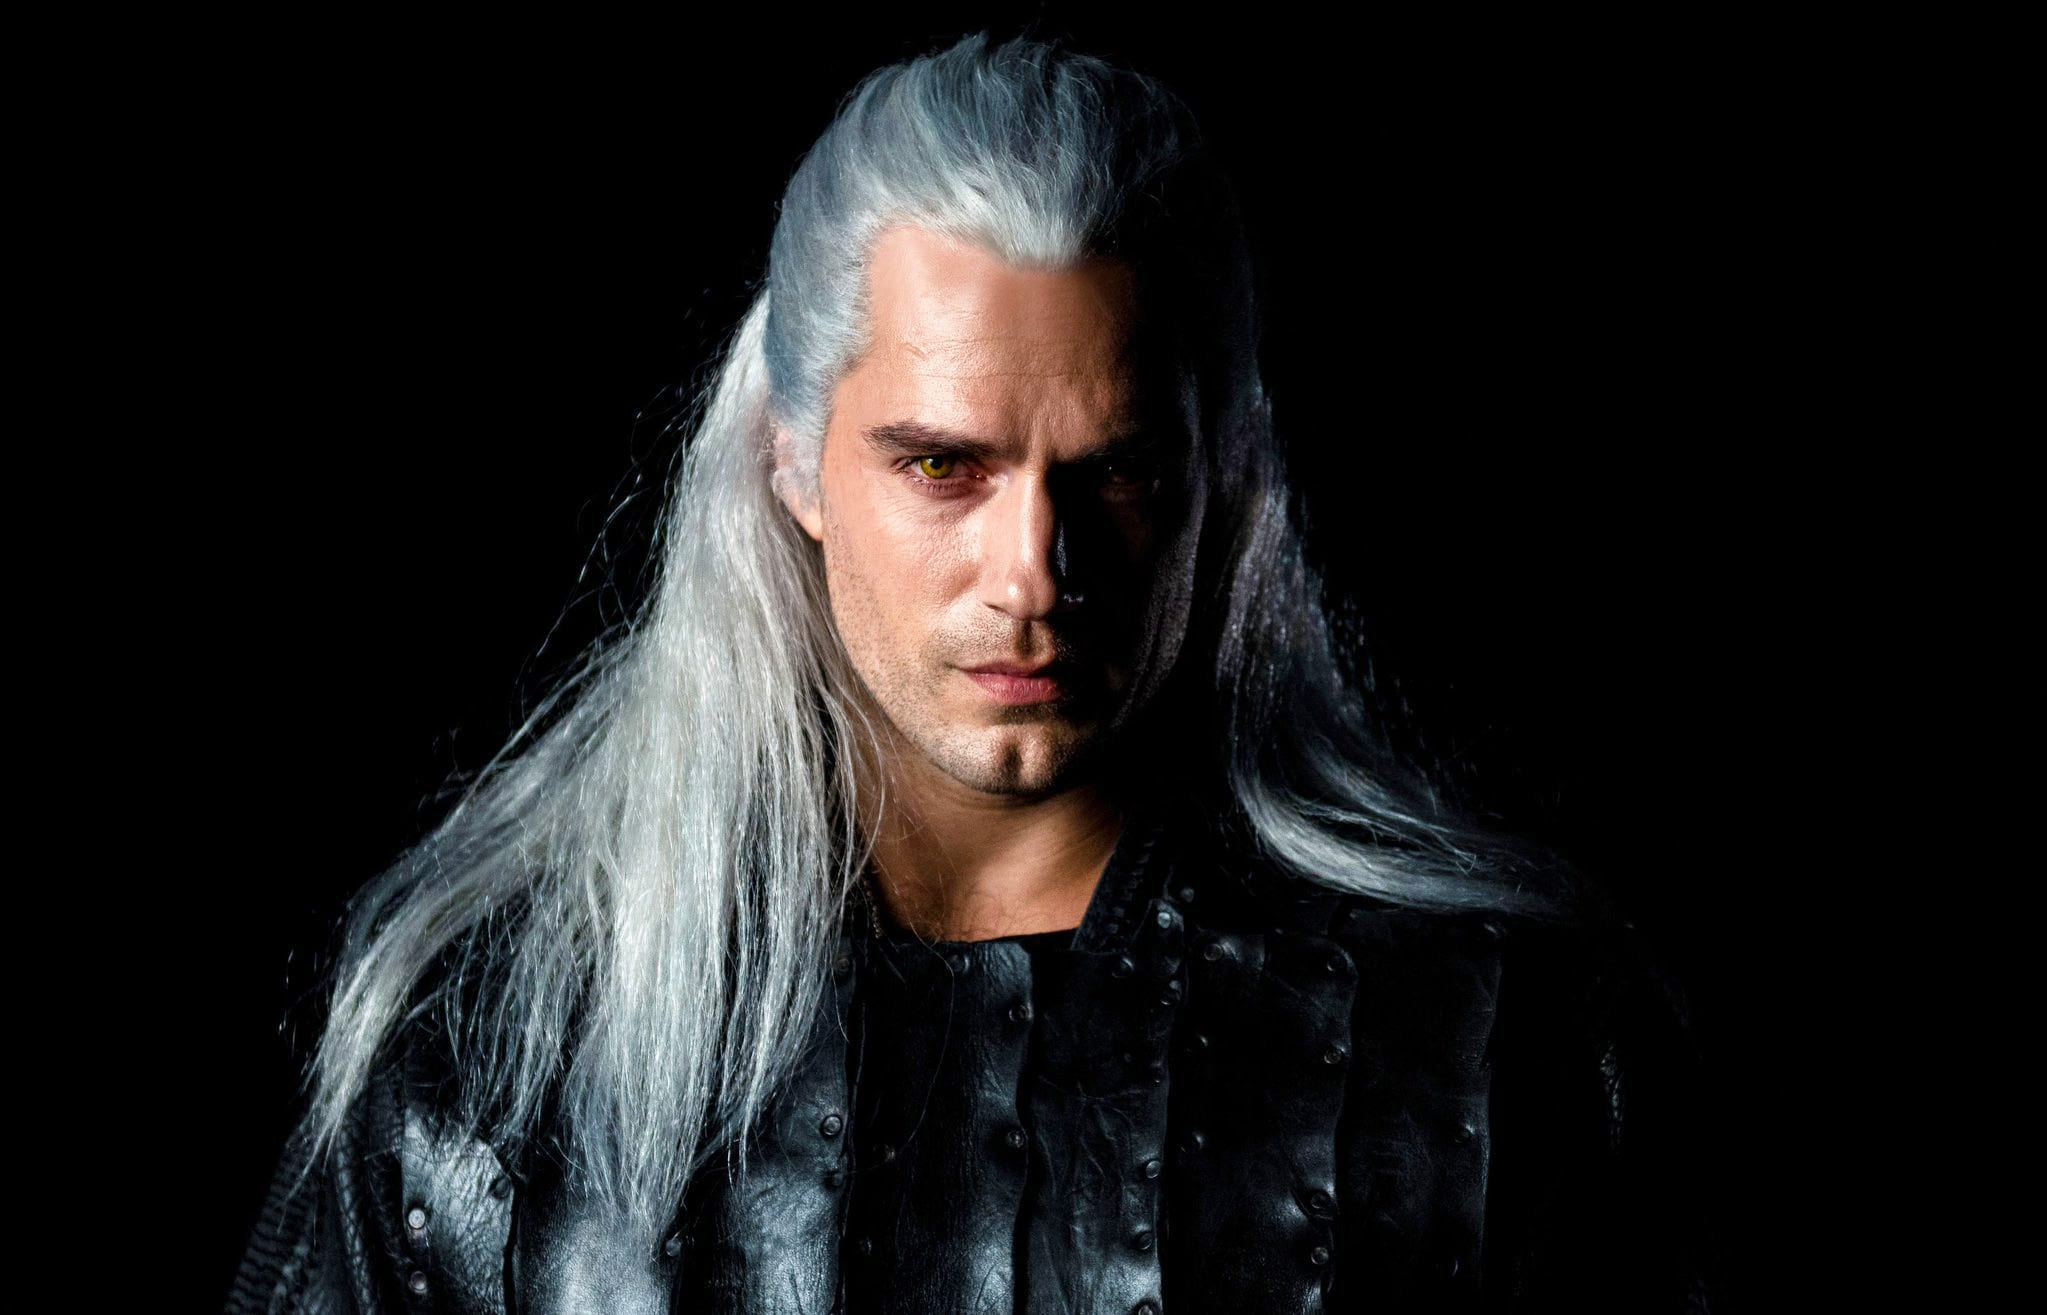 Netflix Canada's 'The Witcher' Adaptation Looks Like The New 'Game Of Thrones'